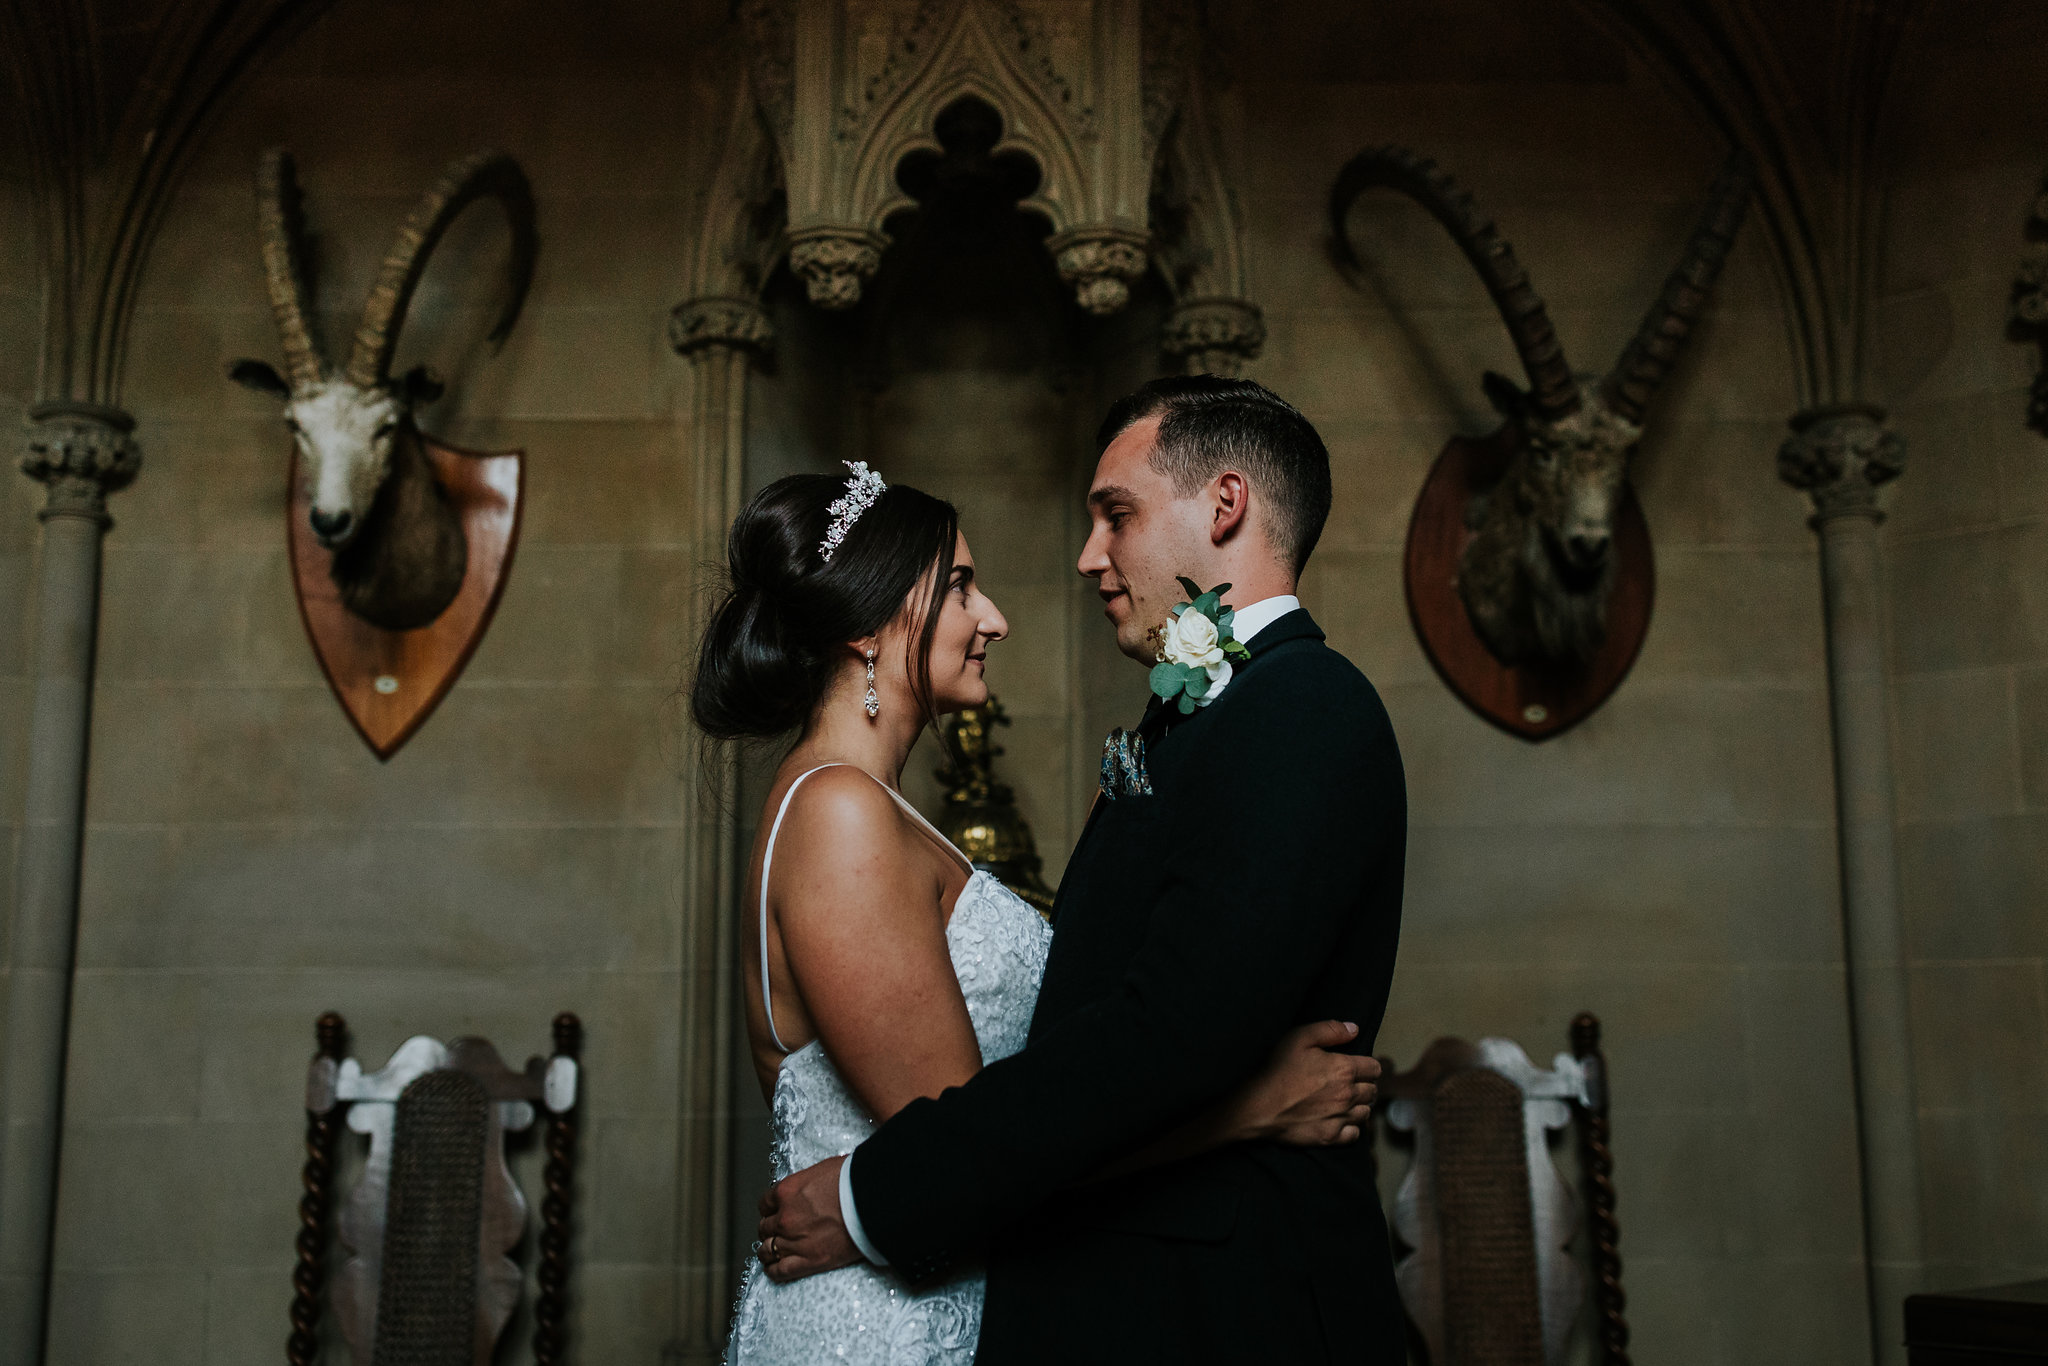 Duns_Castle_wedding_photographer_ross_alexander_photography (110).jpg